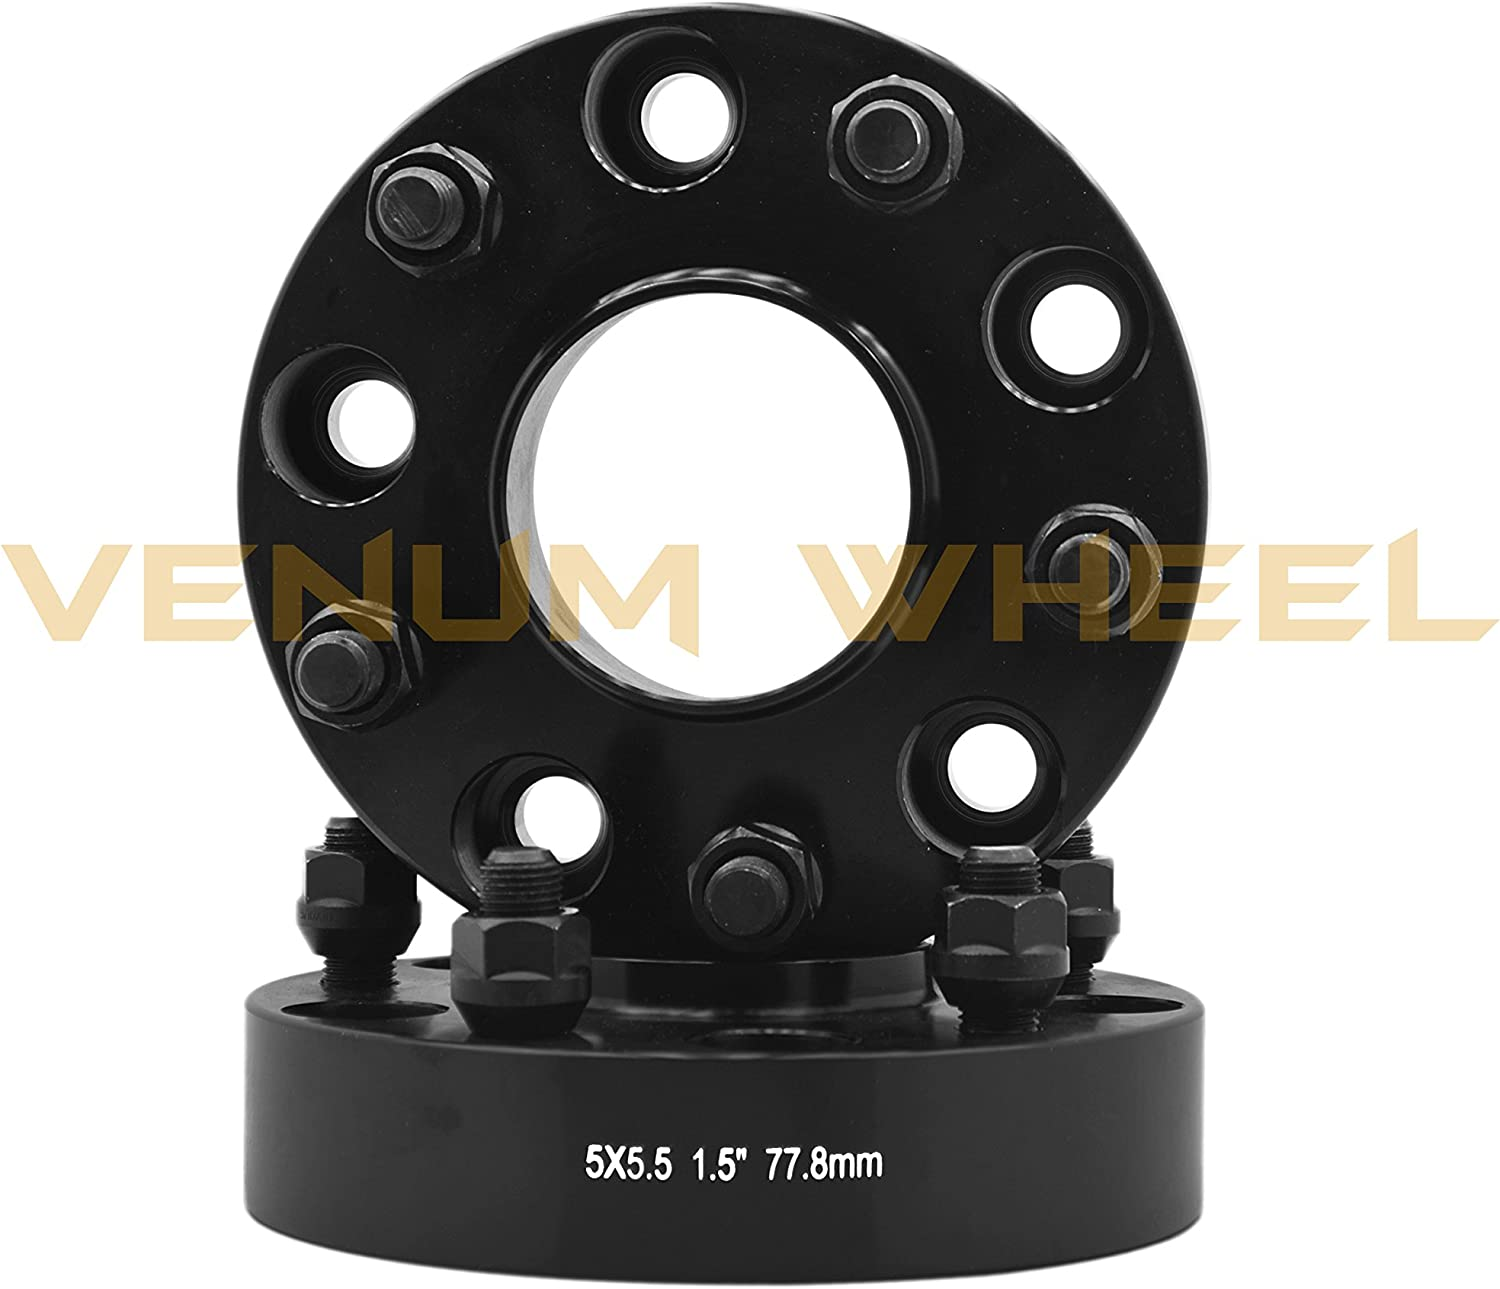 4 Pc Ram 1500 1.25 Thick Black Hub Centric Wheel Spacers 2x4 5x5.5 Adapters 77.8mm 4x4